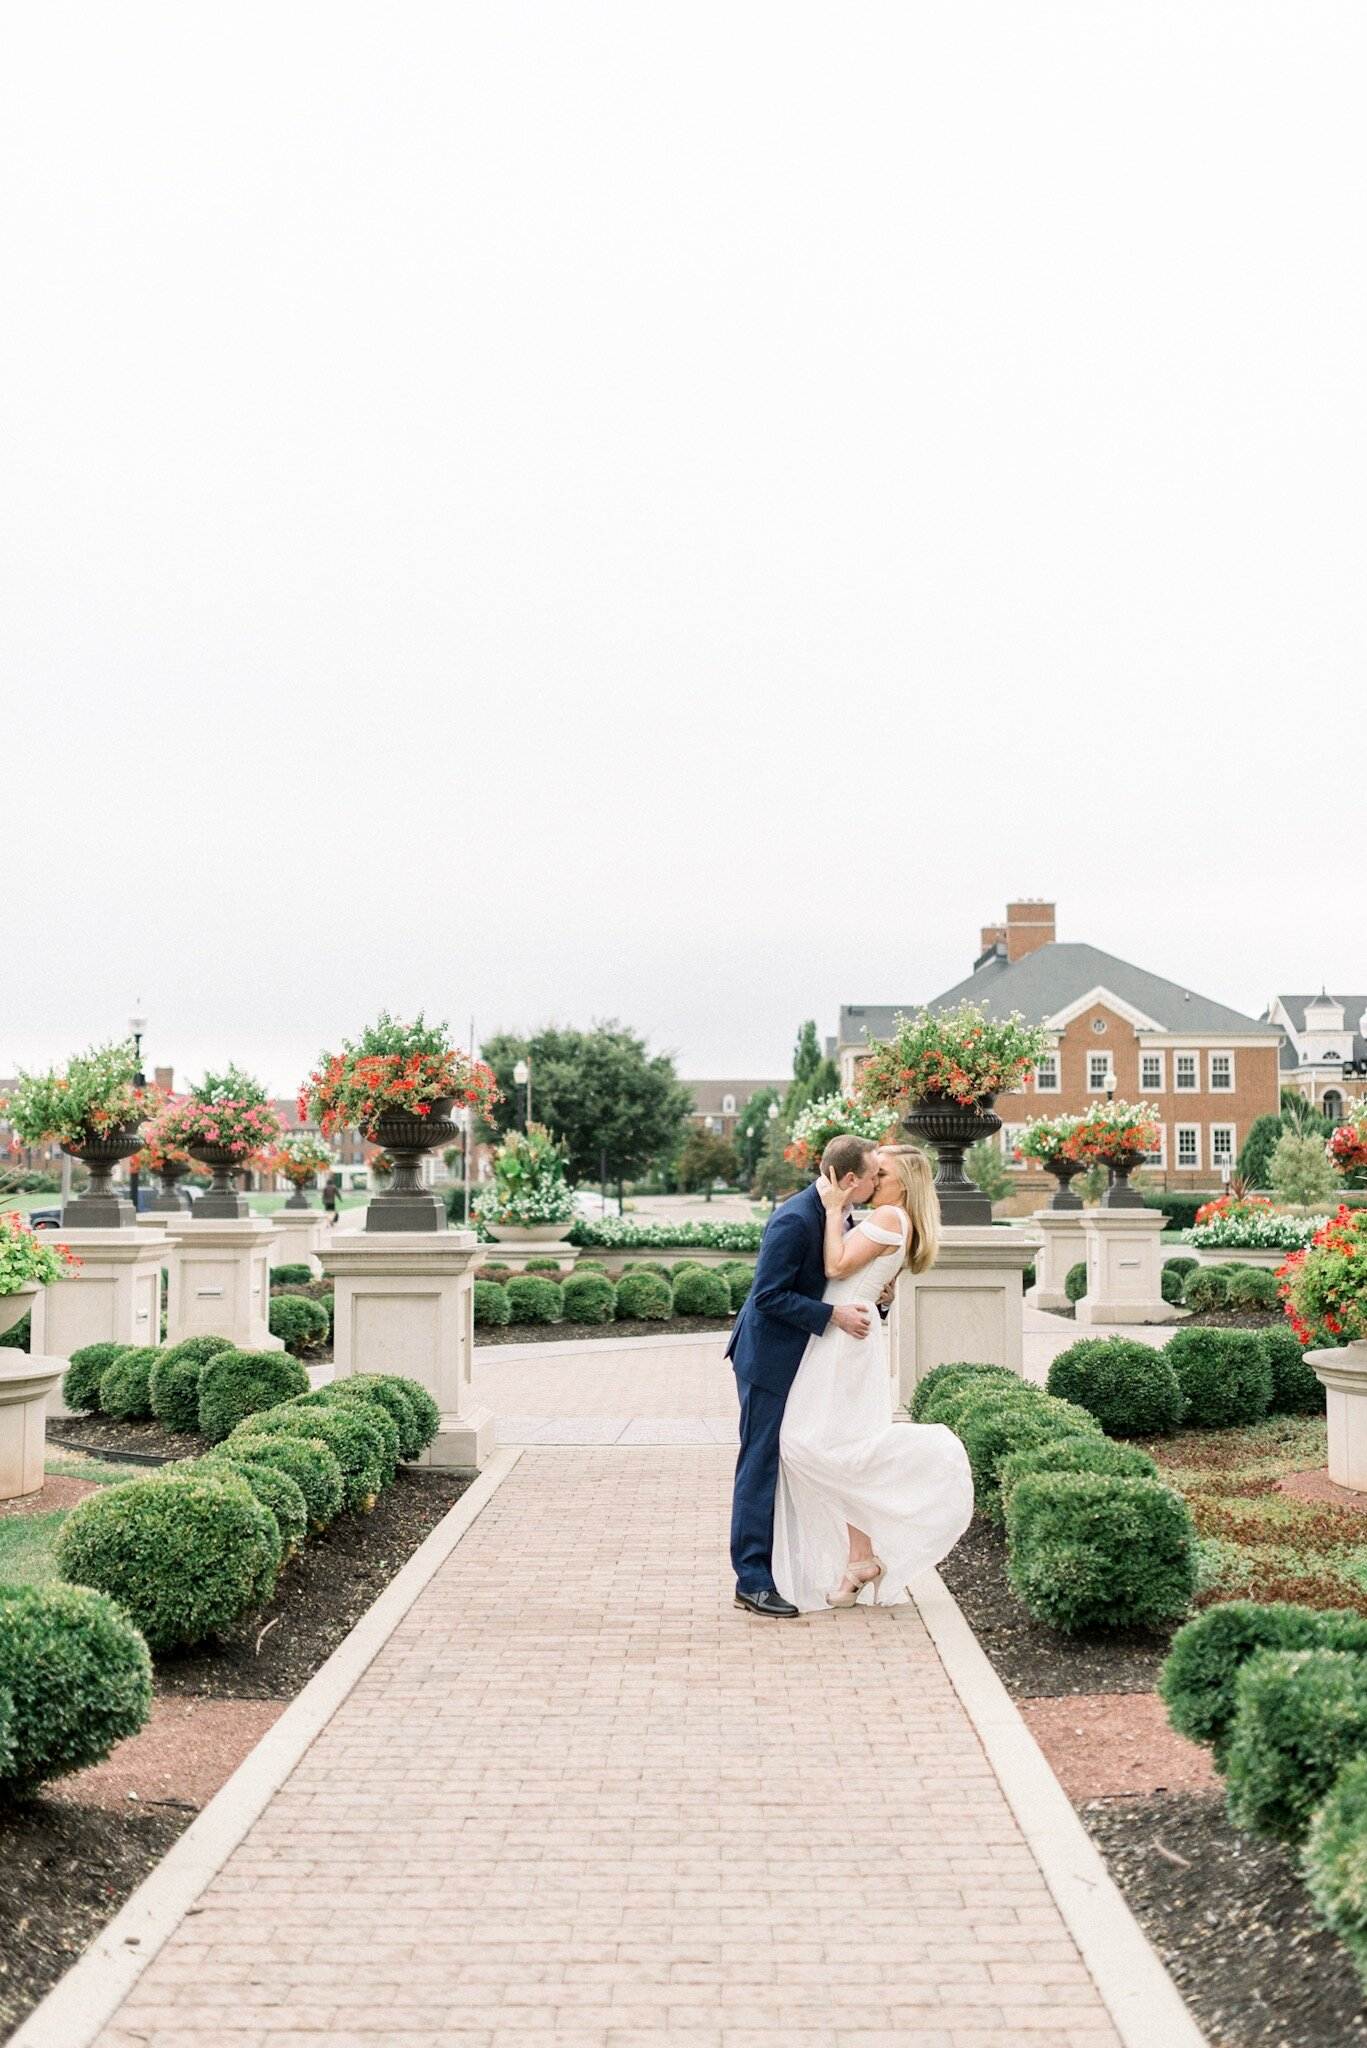 Bethany & Alex | Upscale and Romantic Engagement in the Rain | Carmel Palladium - Center for the Performing Arts | Indianapolis Wedding Photographers